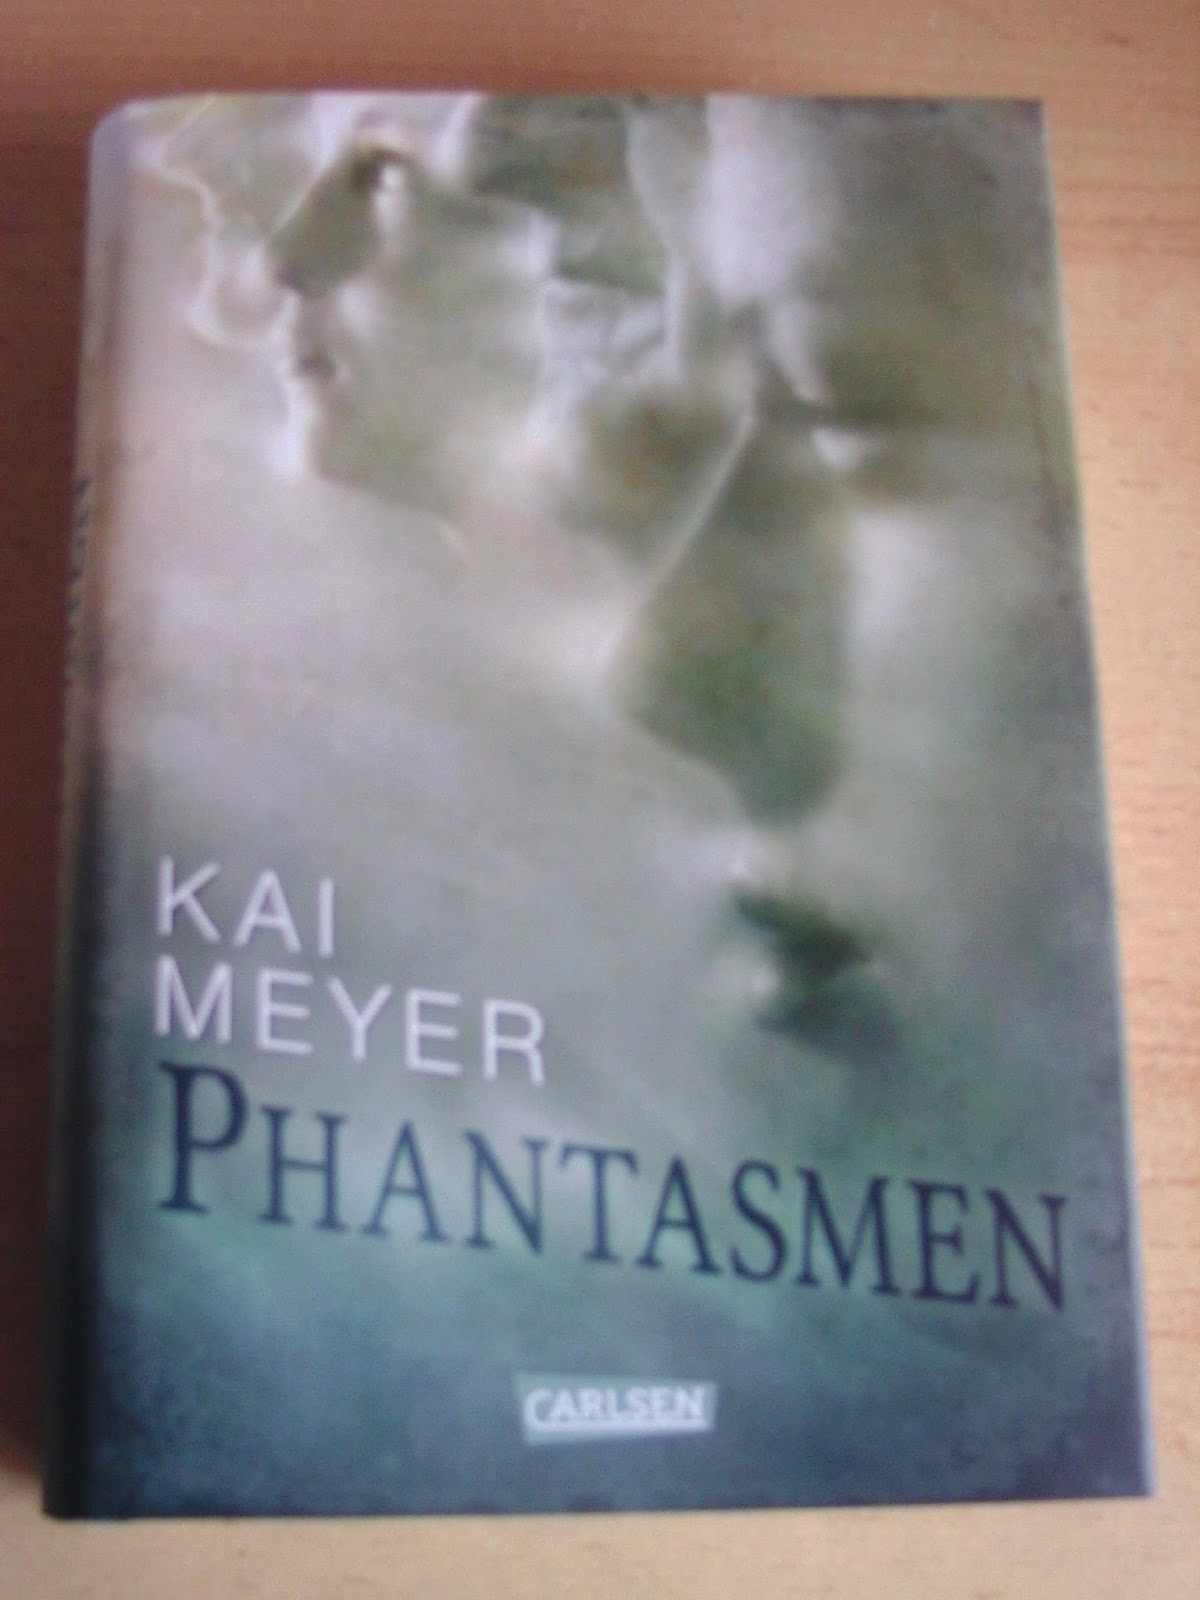 http://www.amazon.de/Phantasmen-Kai-Meyer/dp/3551582920/ref=cm_cr_pr_product_top